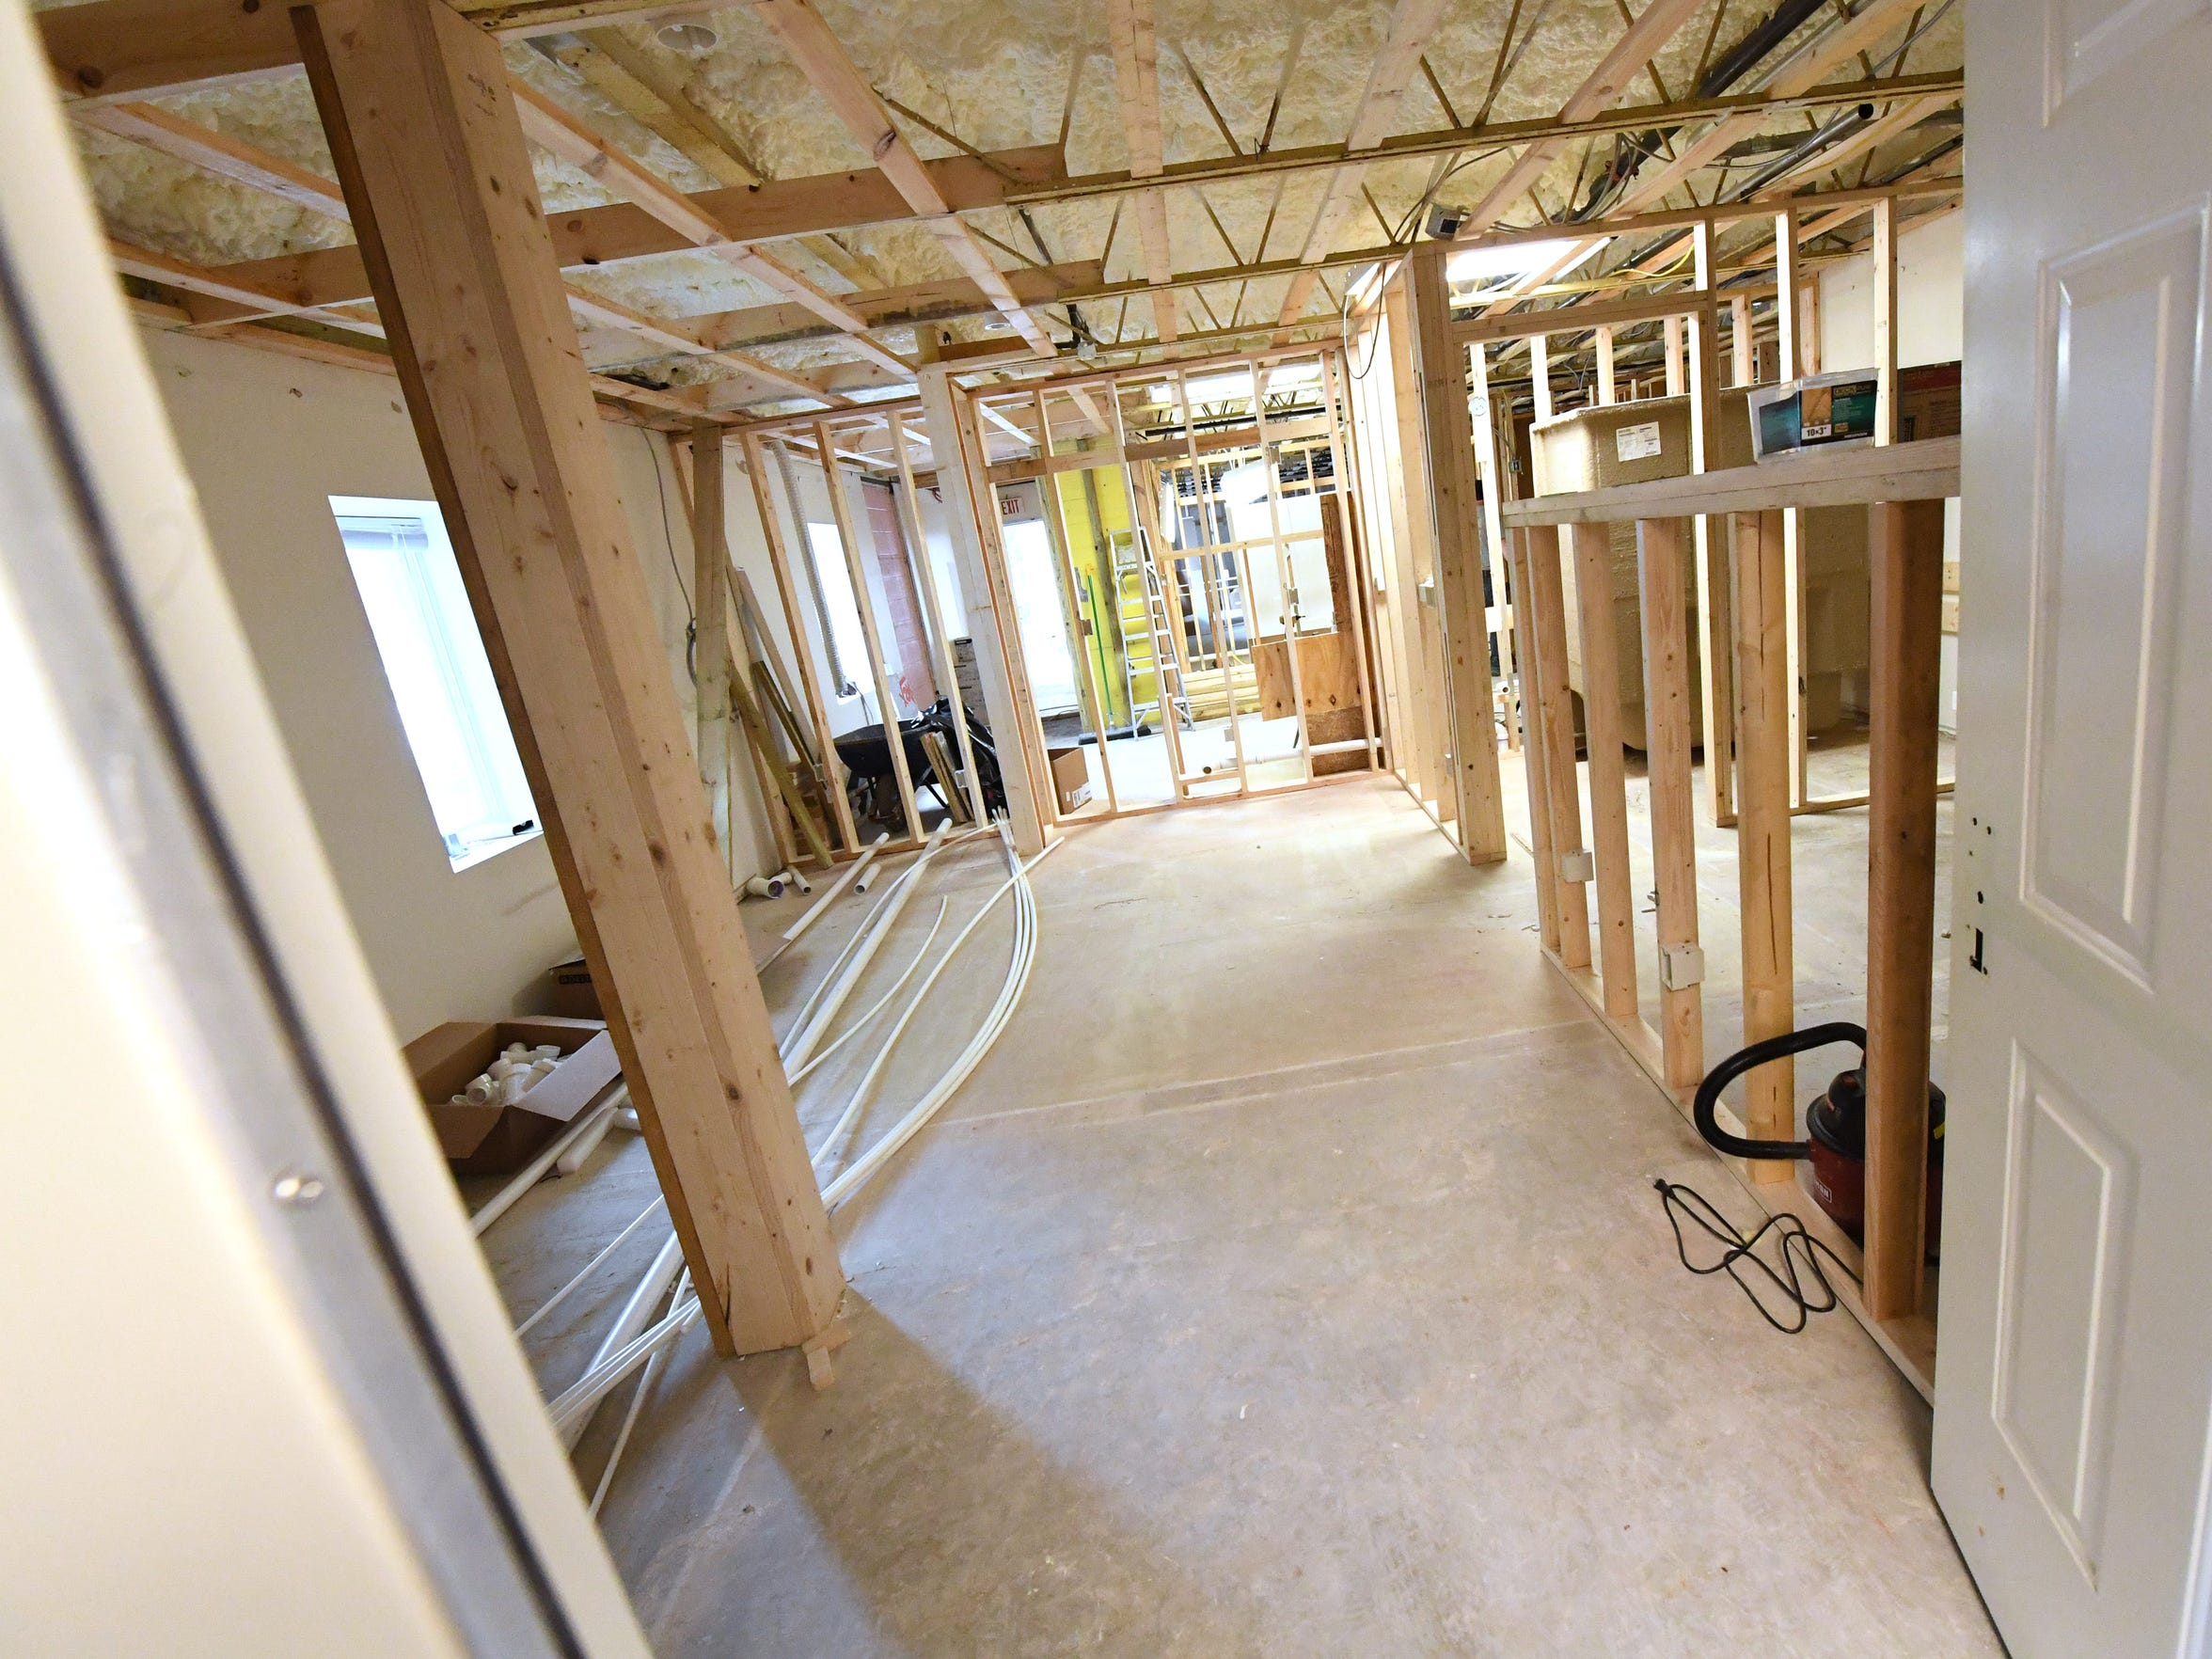 A view inside one of the new apartments being constructed at Johnson Street Apartments.